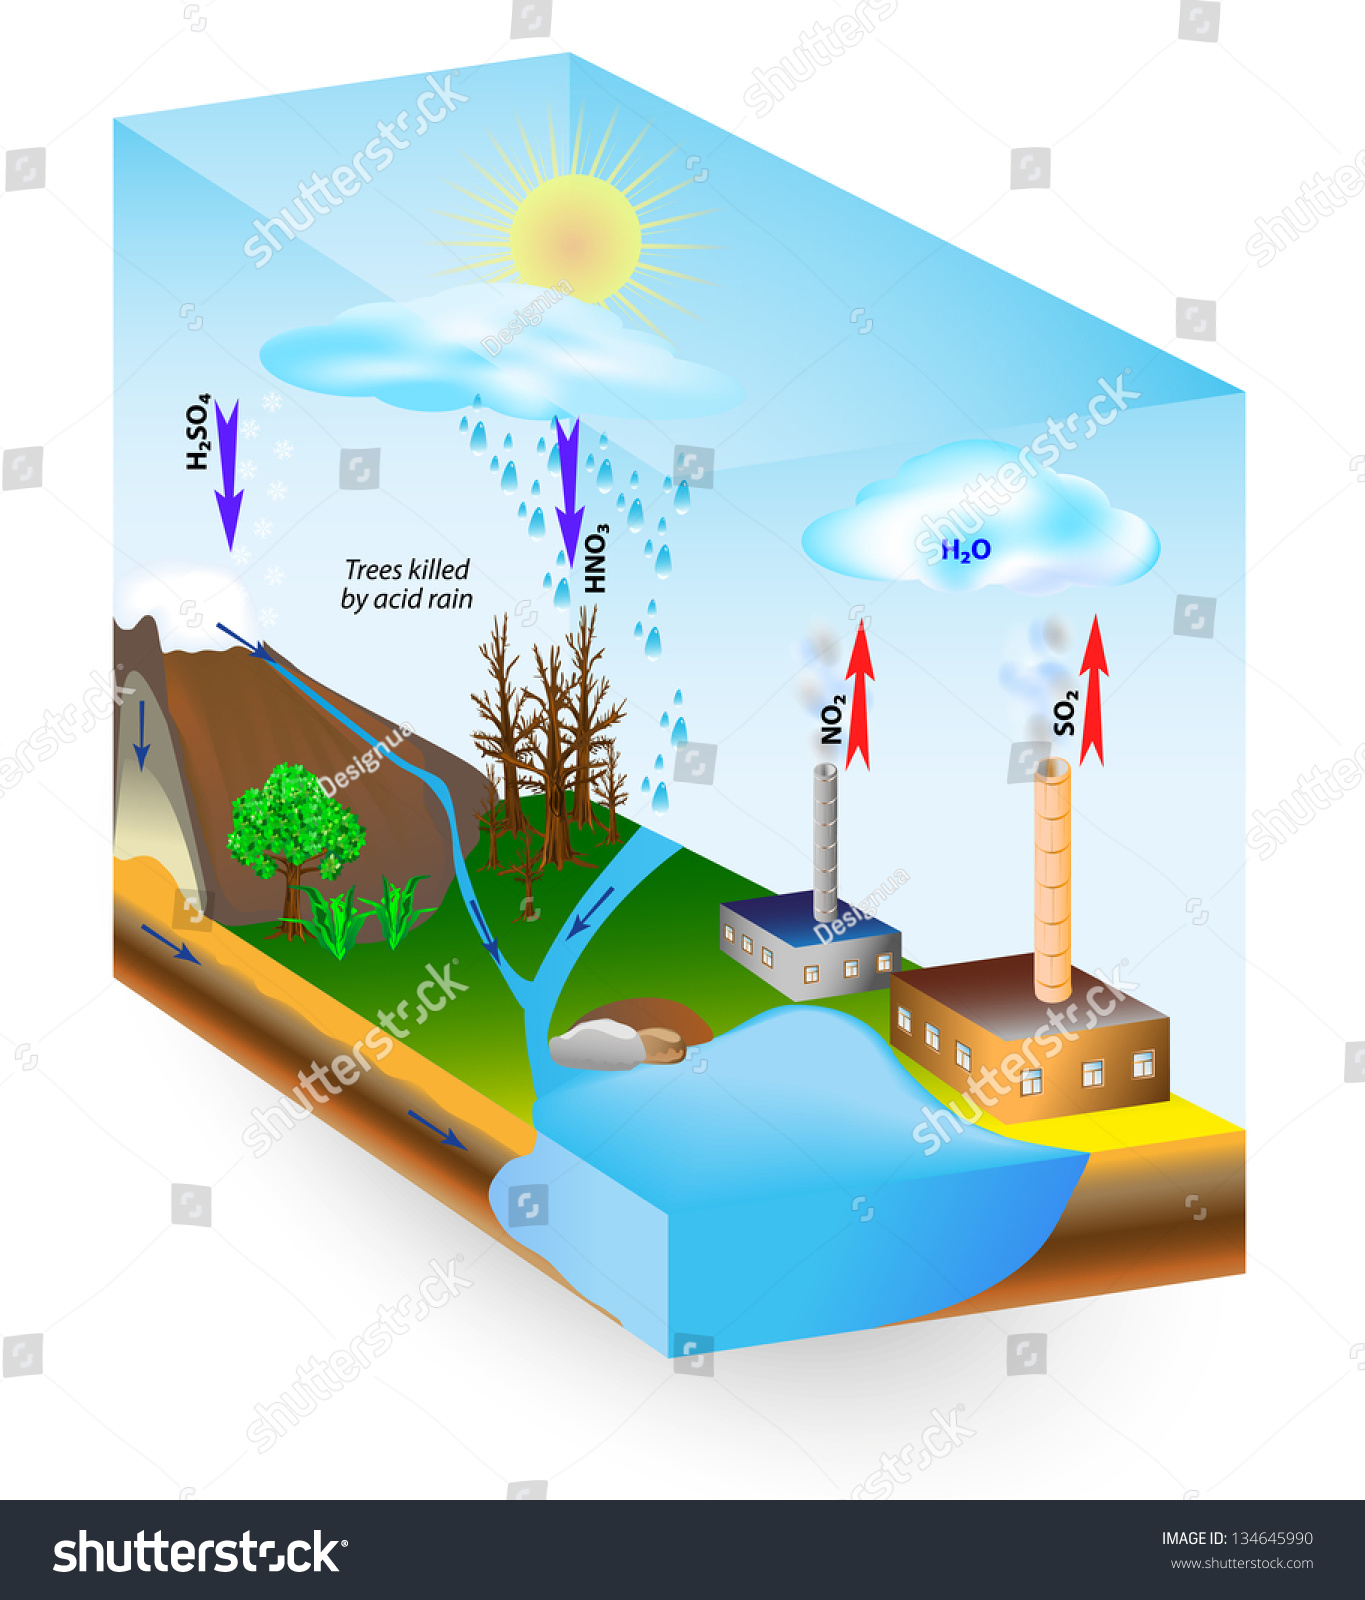 acid rain is caused by emissions of sulfur dioxide and nitrogen oxide,  which react with the water molecules in the atmosphere to produce acids   low ph